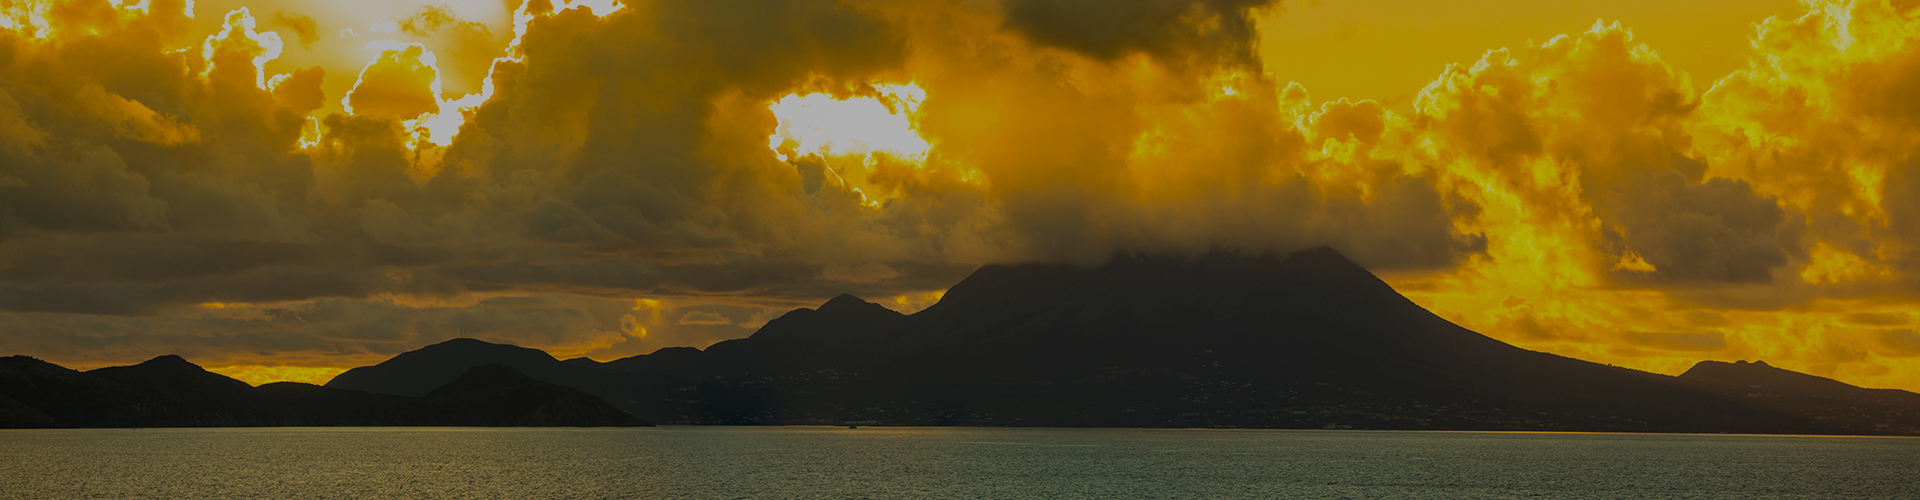 Landmark photograph of St. Kitts & Nevis